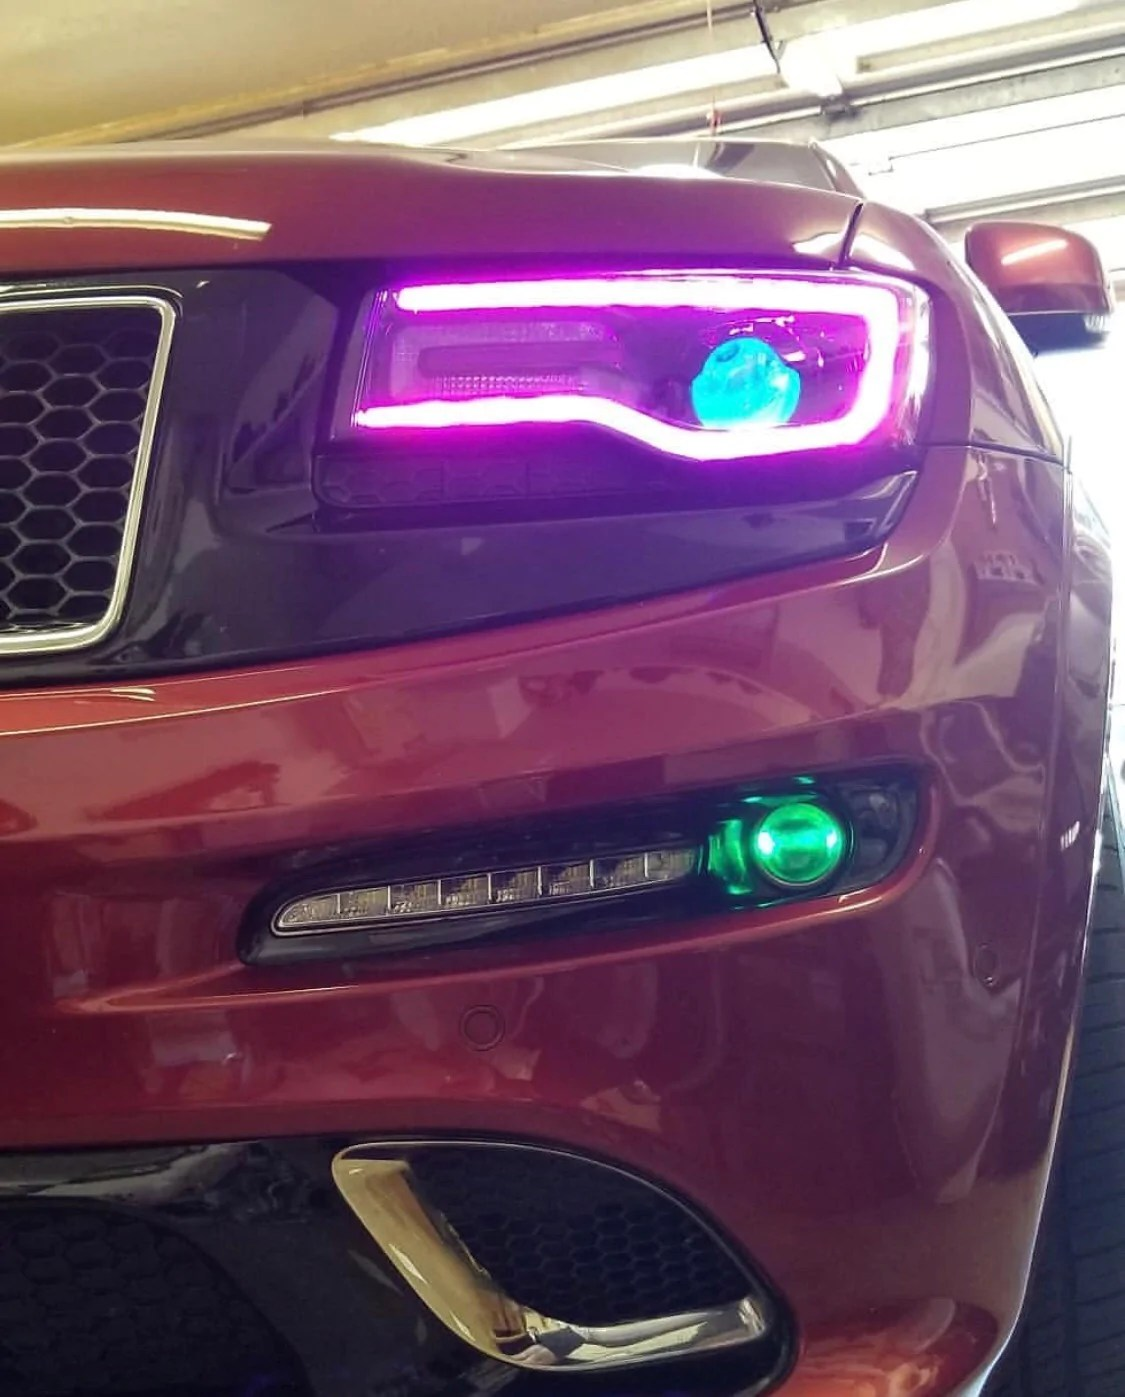 Jeep Grand Cherokee Headlight Replacement : grand, cherokee, headlight, replacement, 2014-2021, Grand, Cherokee, +A/Color-Chasing, Boards, AutoLEDTech.com